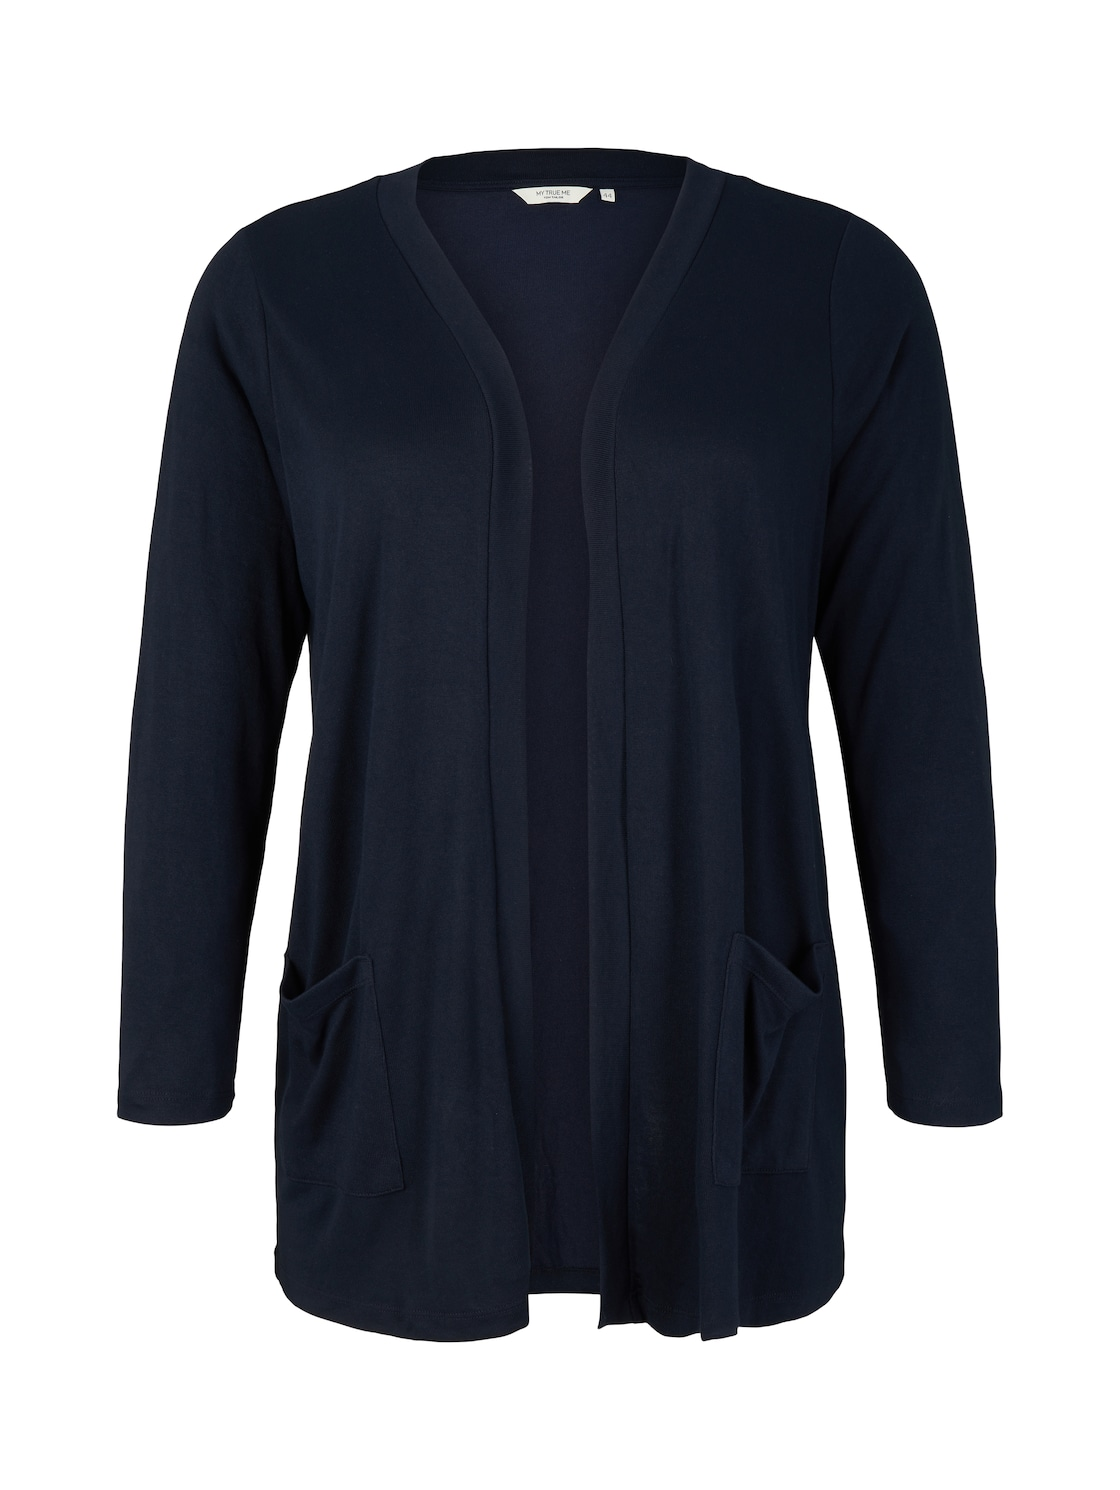 TOM TAILOR MY TRUE ME Damen Shirt Cardigan mit Taschen, blau, Gr.52 von TOM TAILOR MY TRUE ME